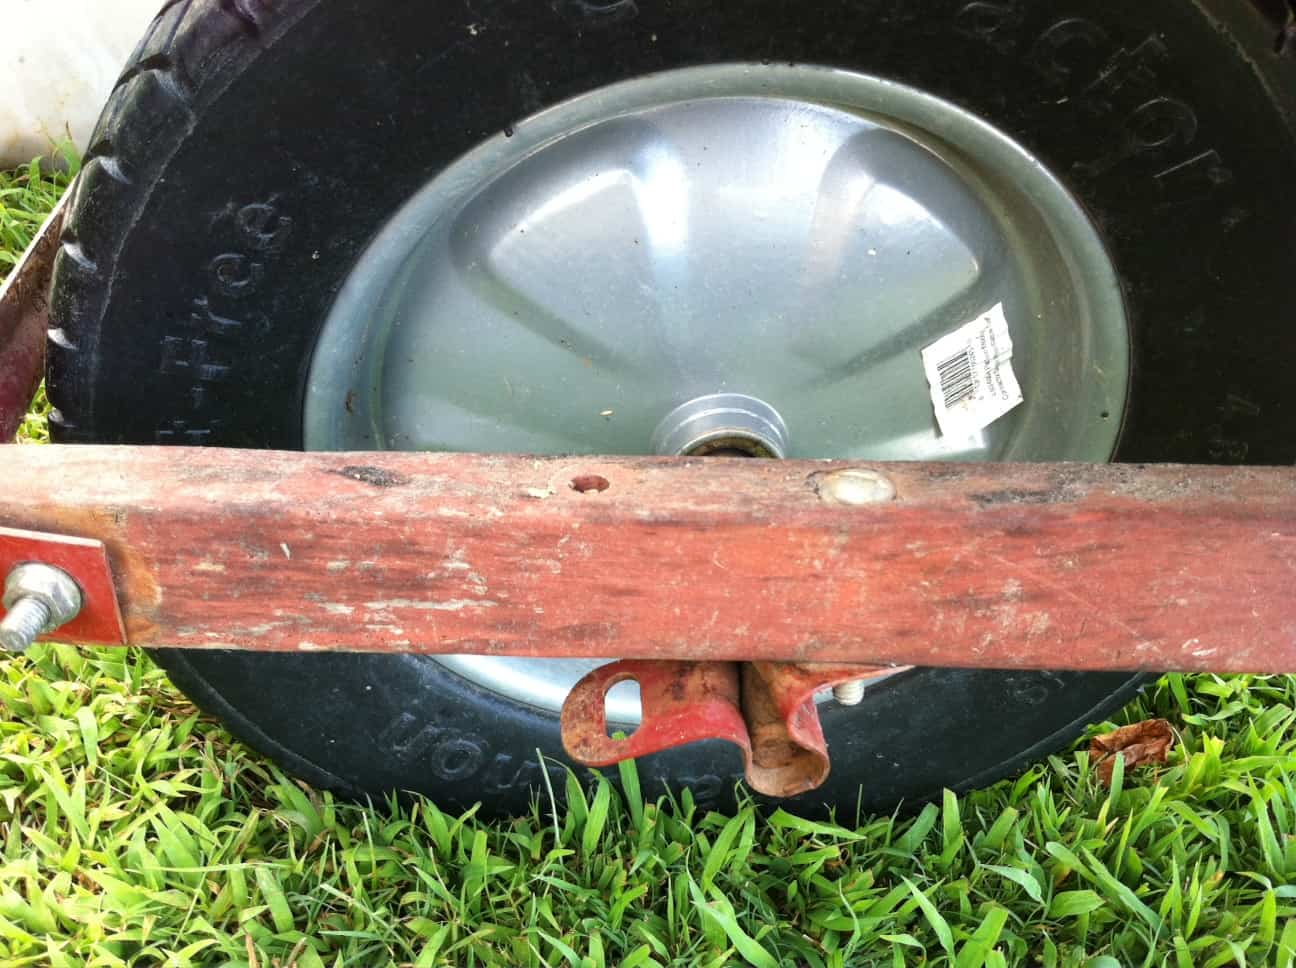 Cindy von Wheelbarrow's replacement tire